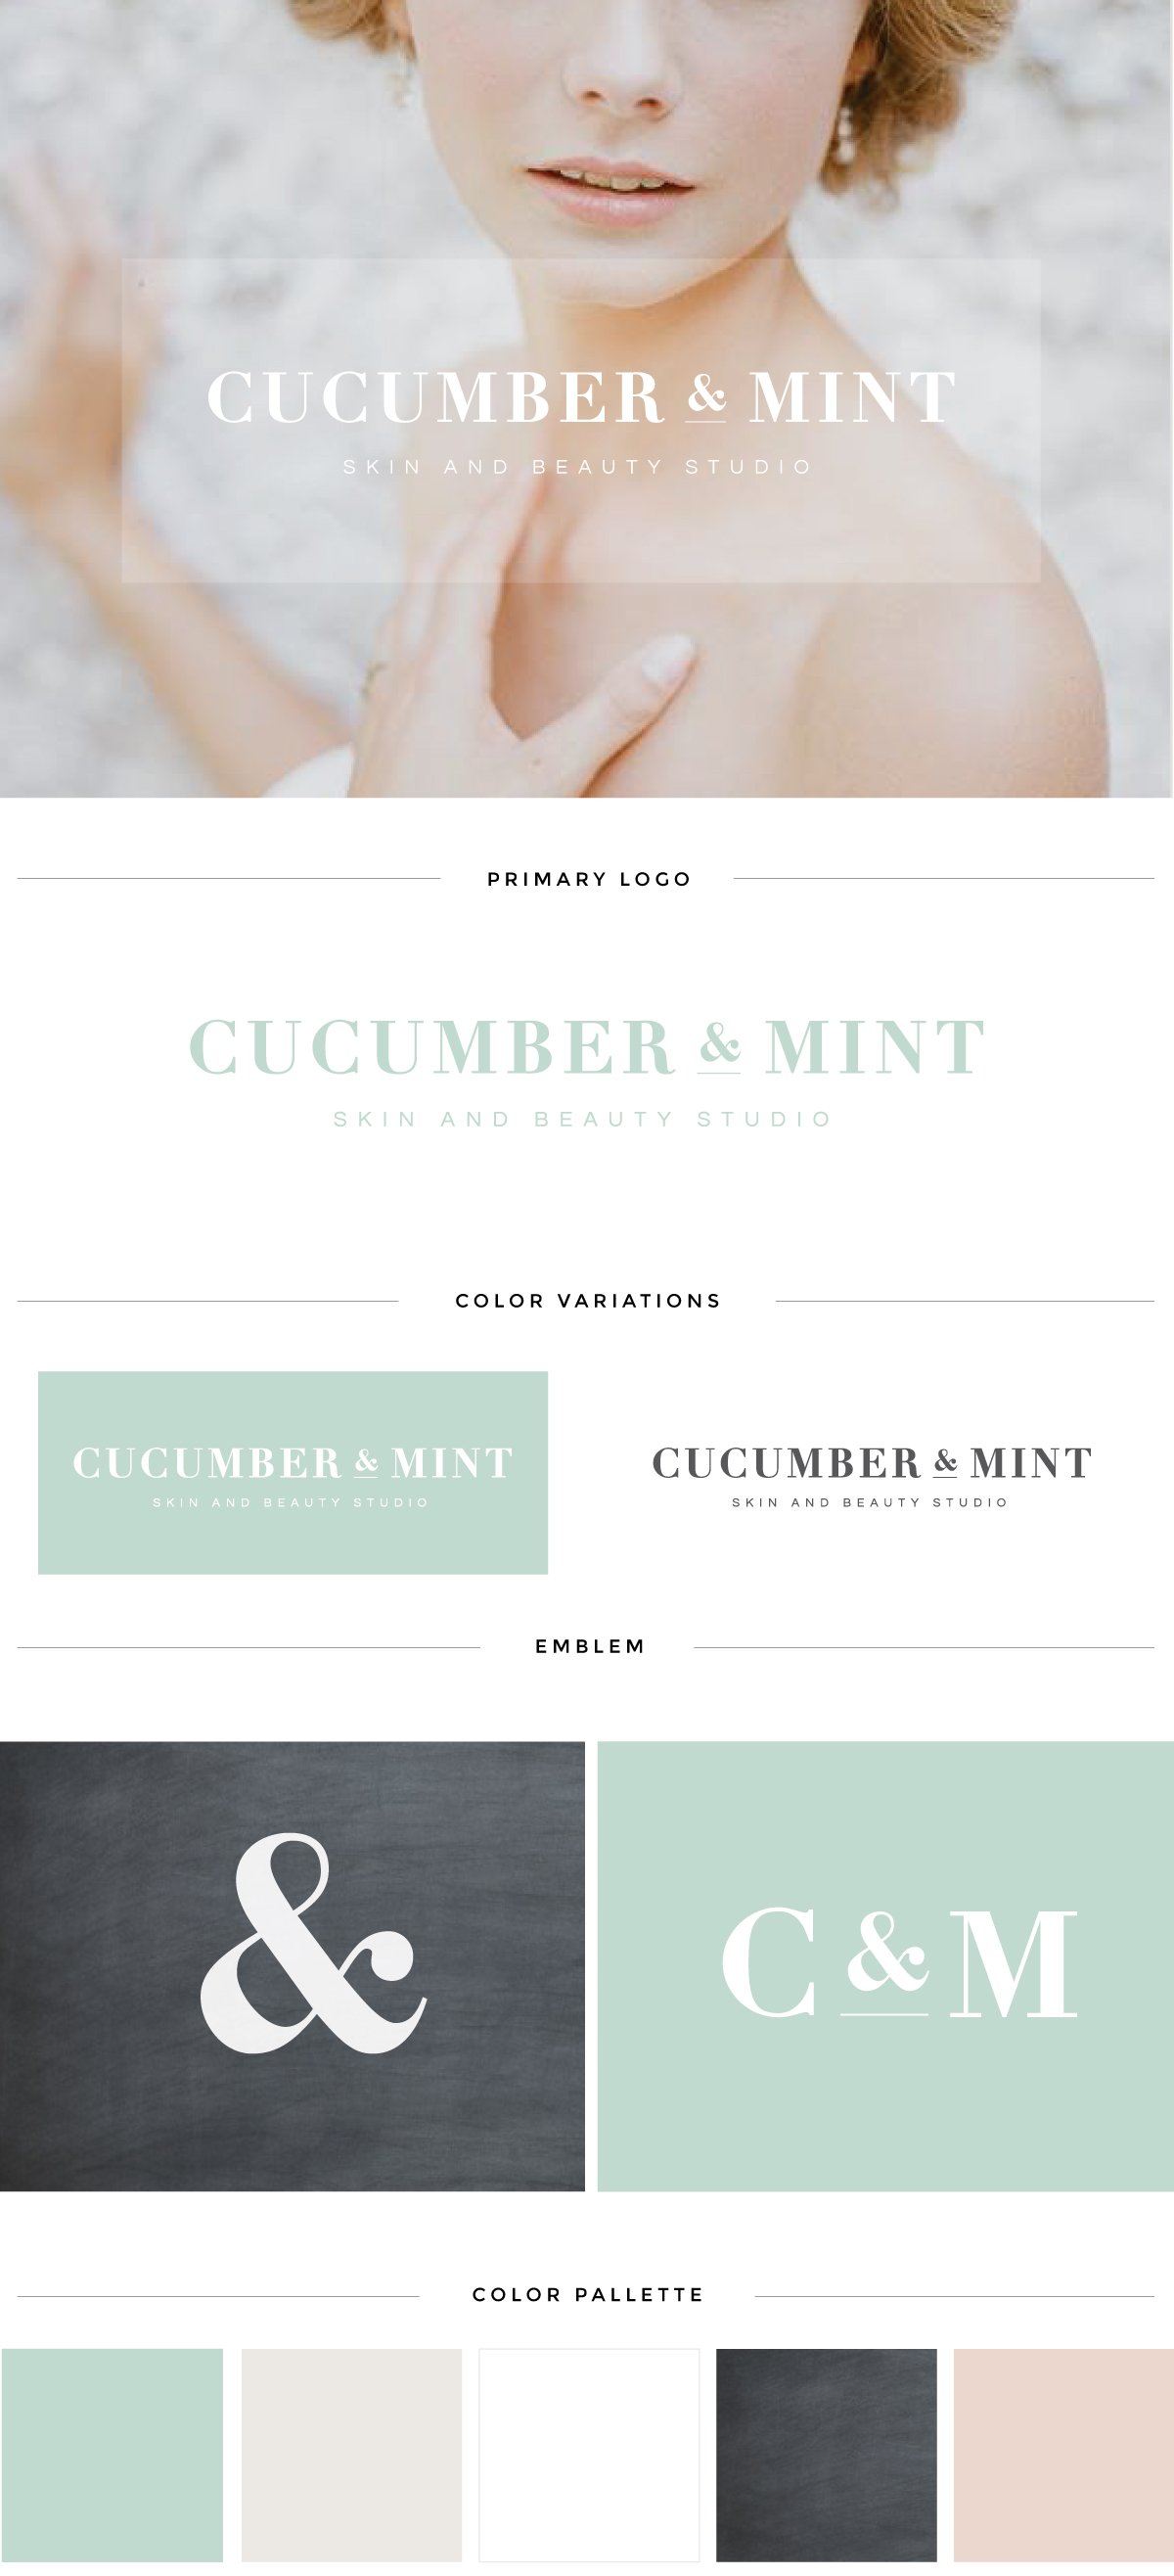 augusta salon logo design cucumber mint brand launch